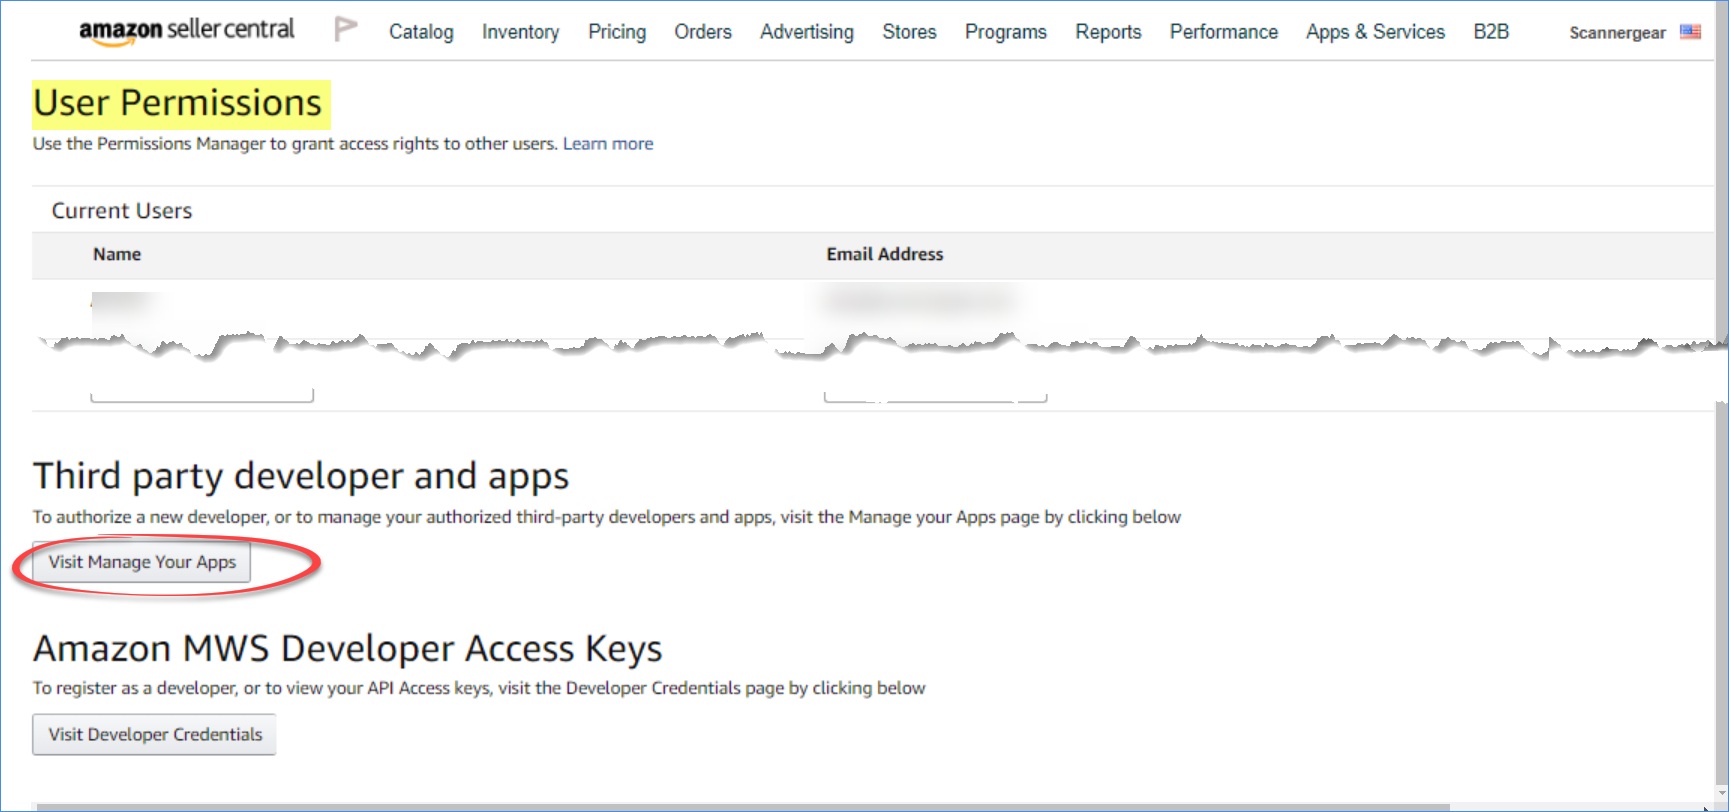 Visit Manage Your Apps button in Seller Central's Settings' User Permissions page